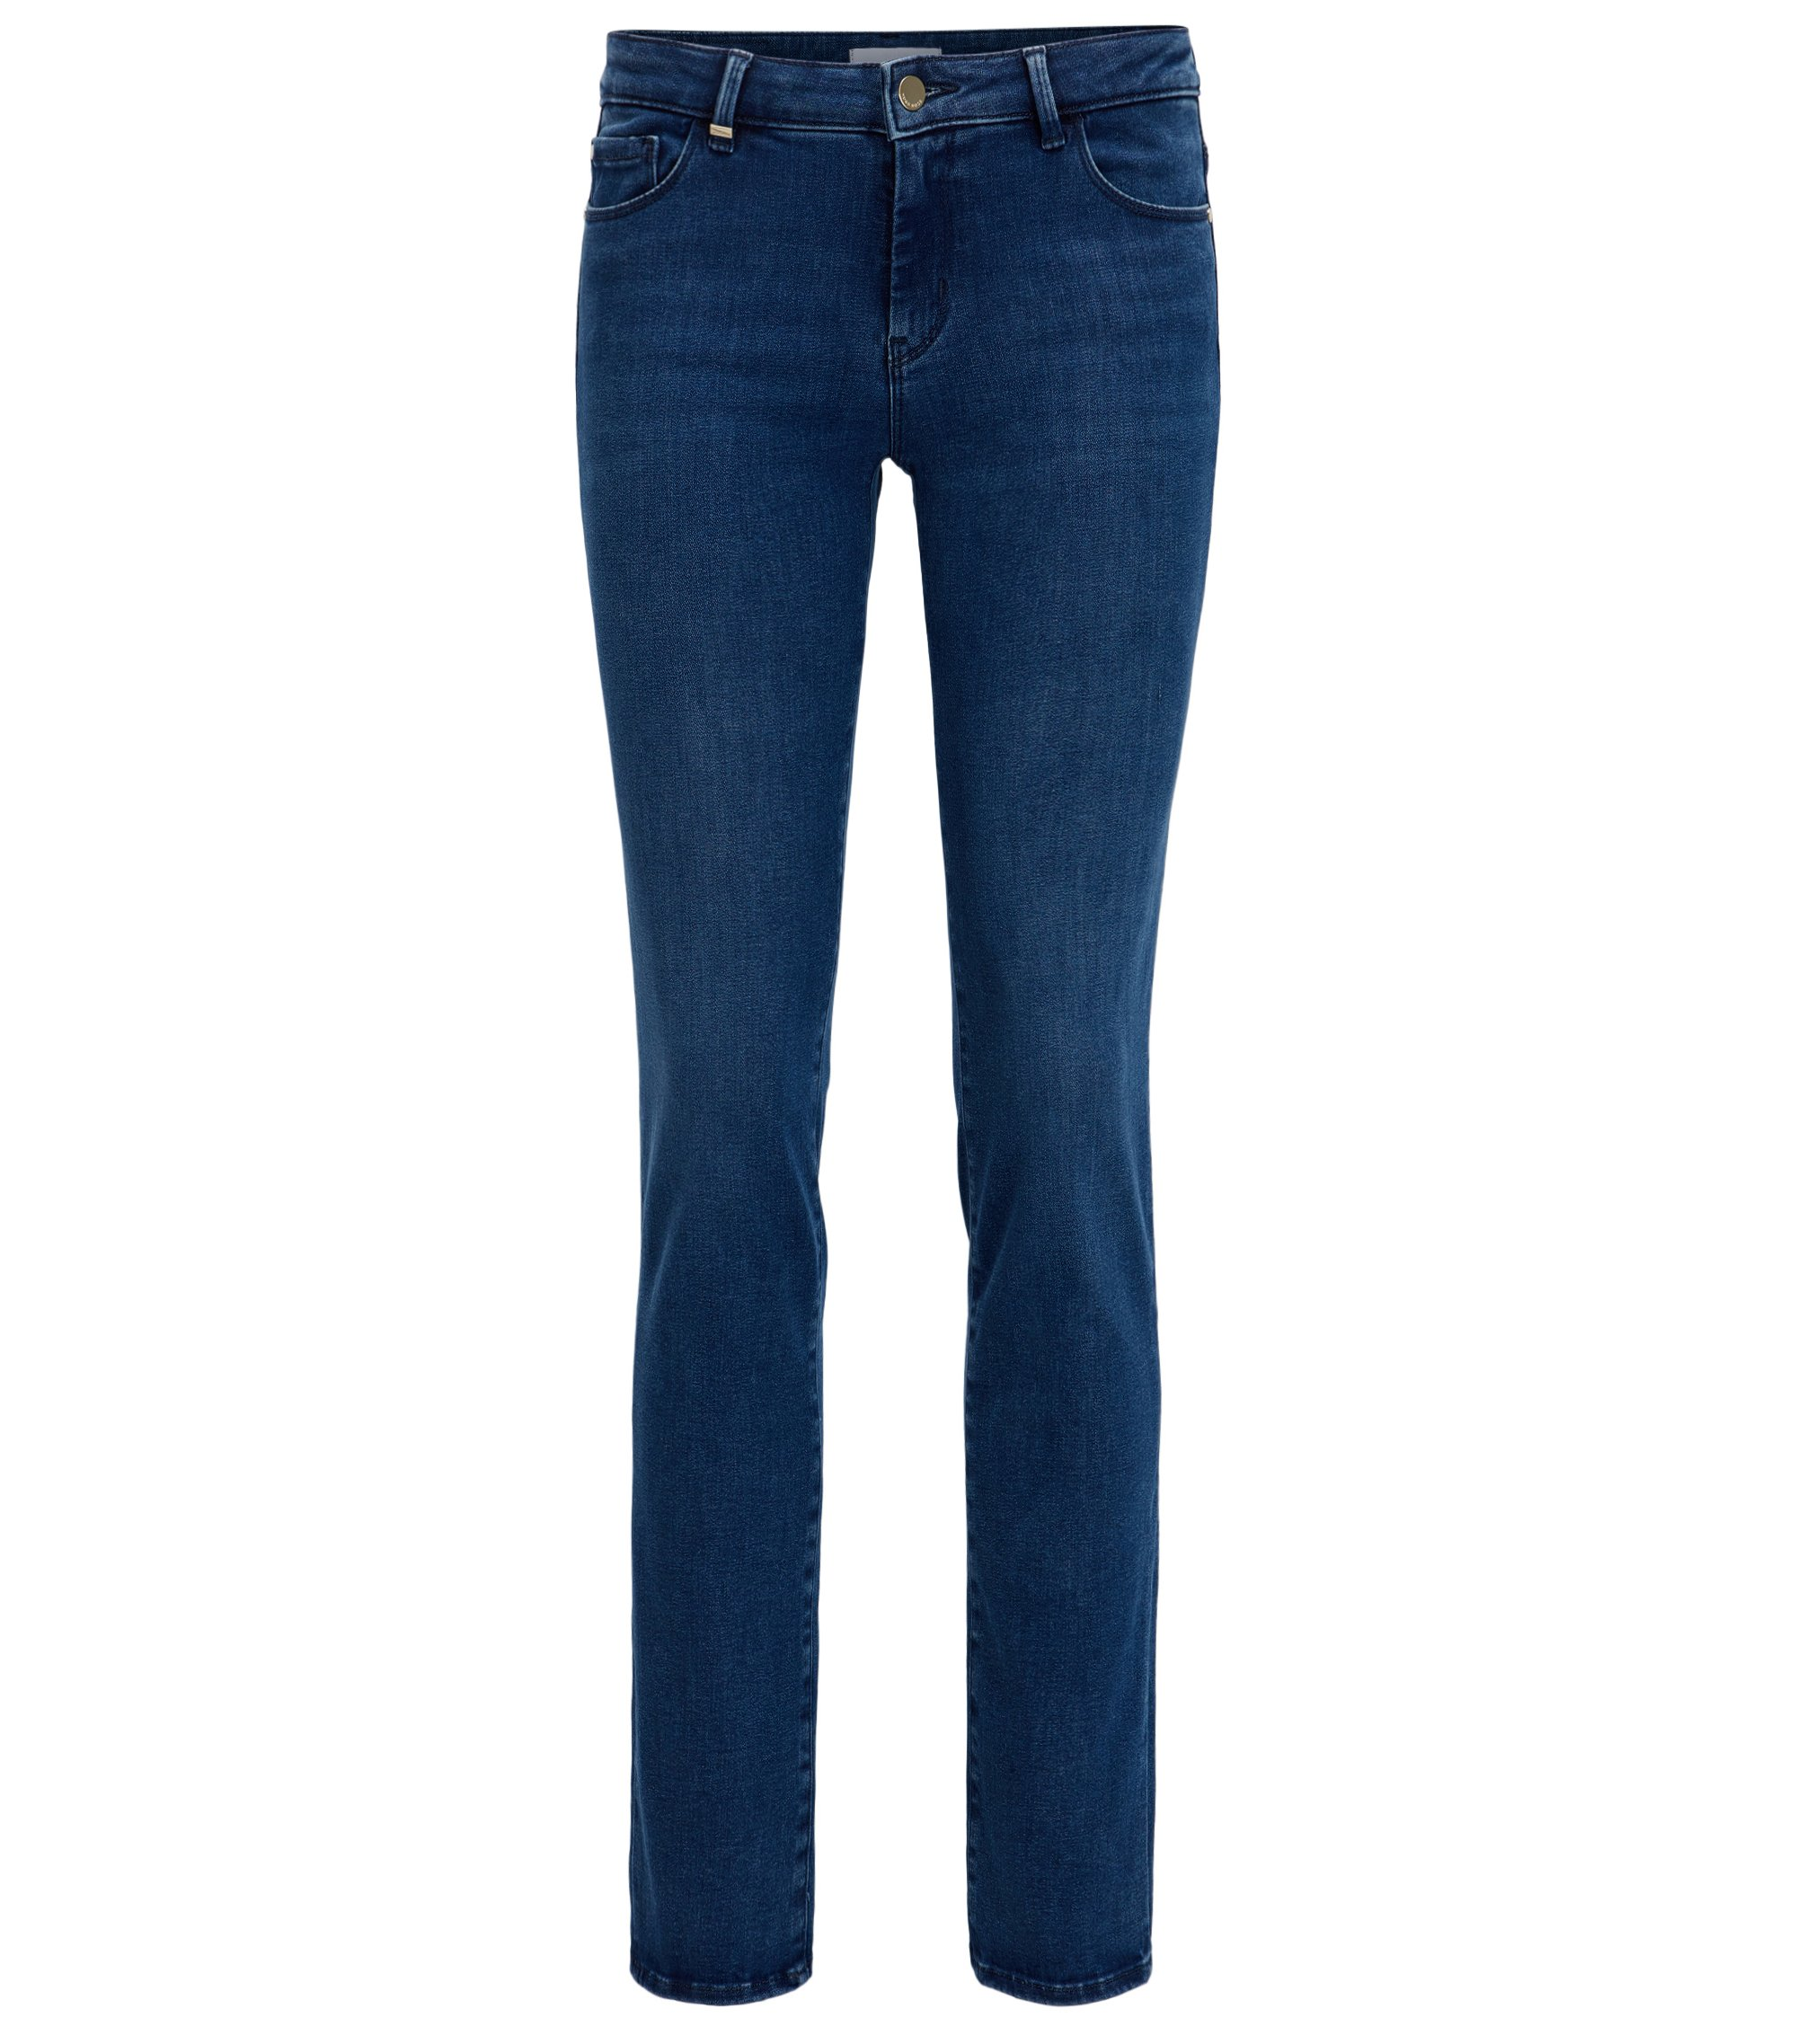 Jean Regular Fit en denim super stretch bleu clair, Bleu foncé